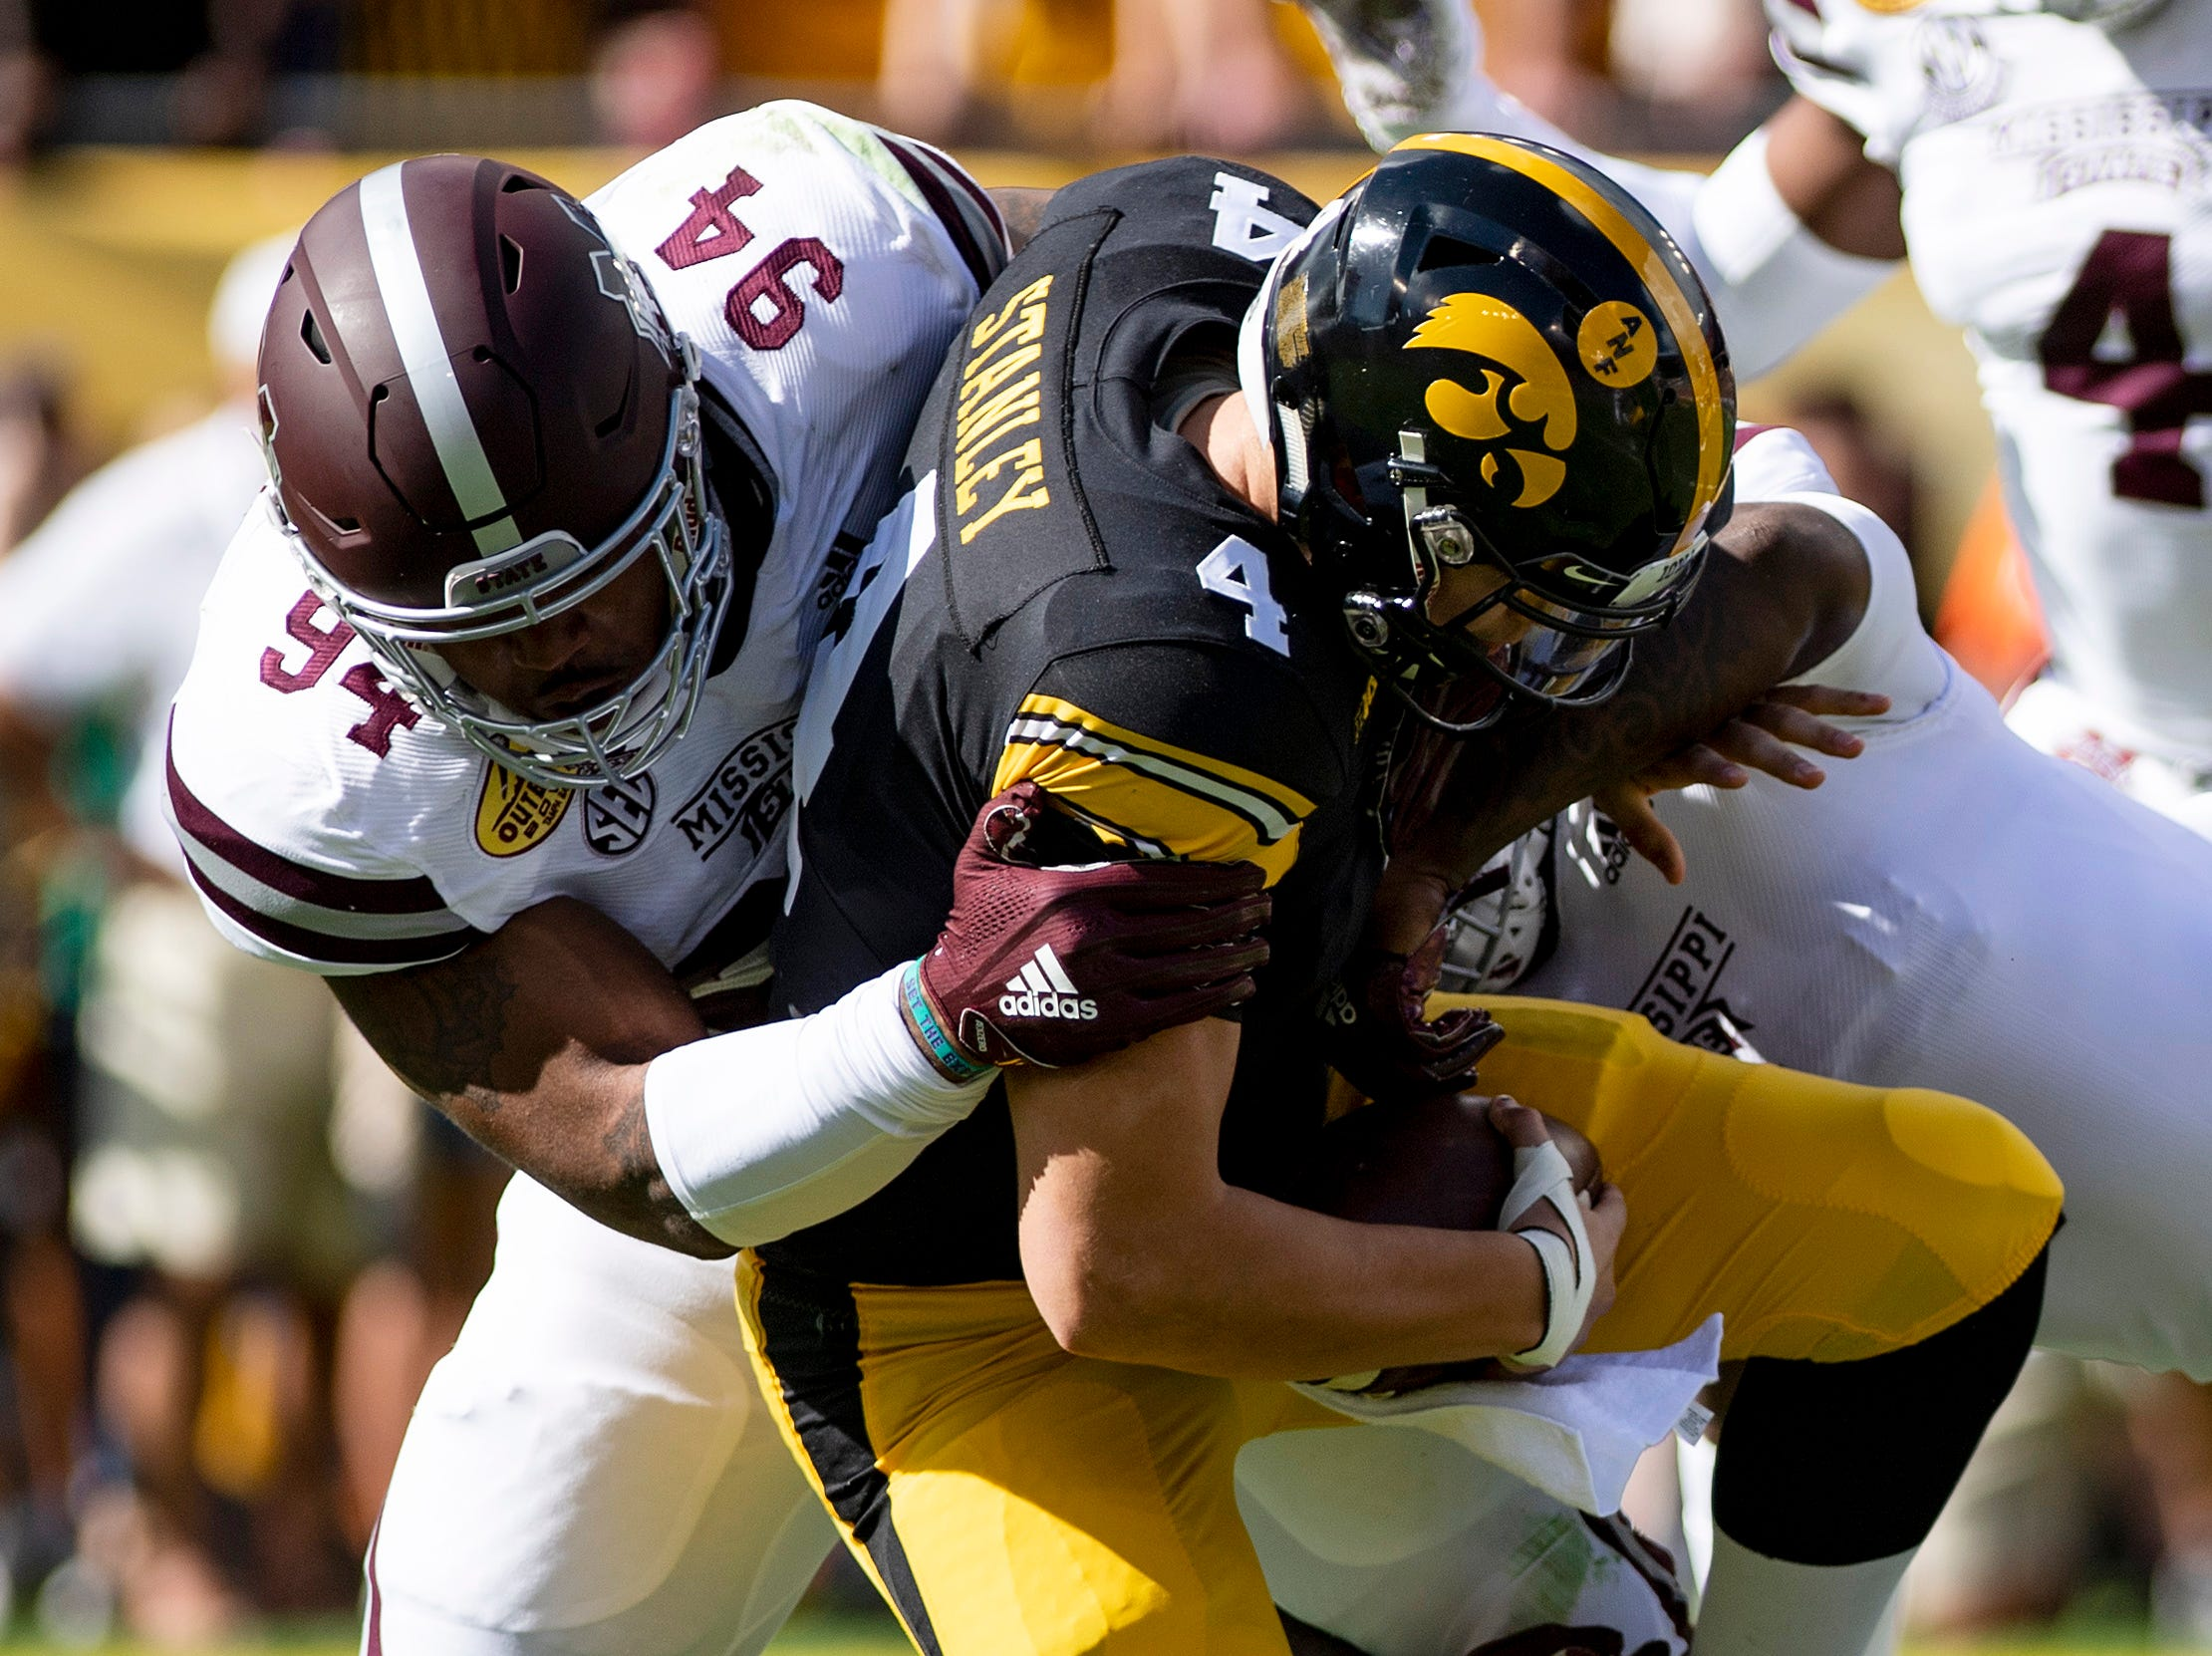 Iowa Hawkeyes quarterback Nate Stanley (4) is sacked by Mississippi State Bulldogs defensive tackle Jeffery Simmons (94) during the first quarter of the Outback Bowl.